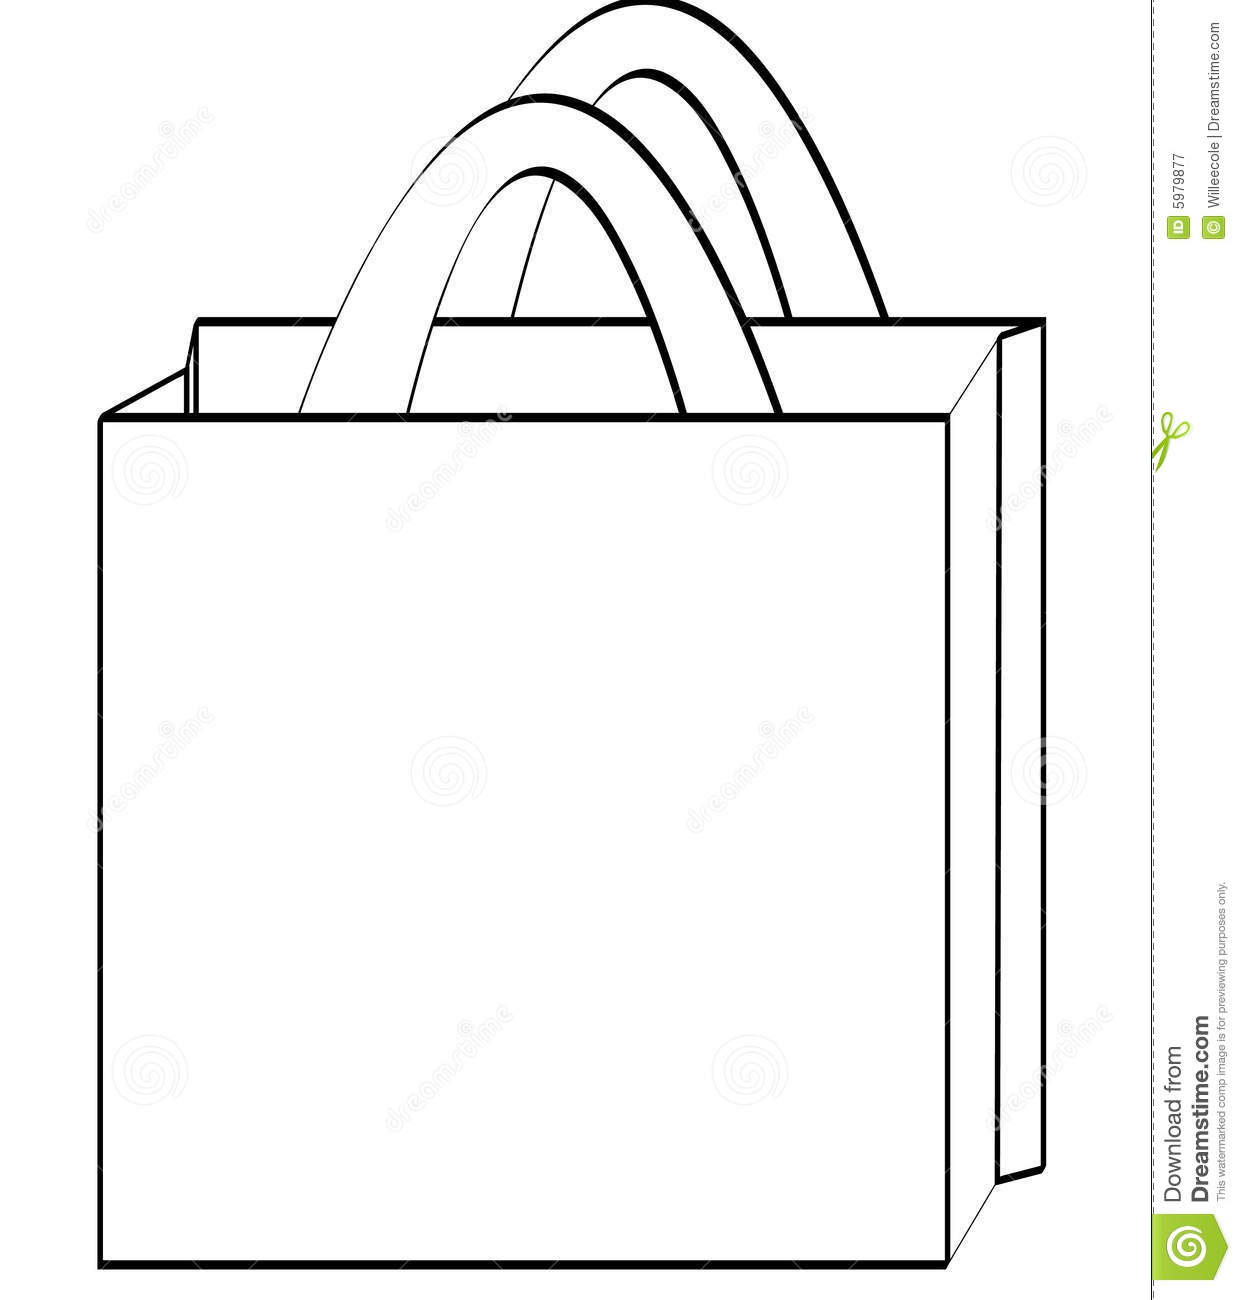 Shopping Bag Outline Royalty Free Stock Photography